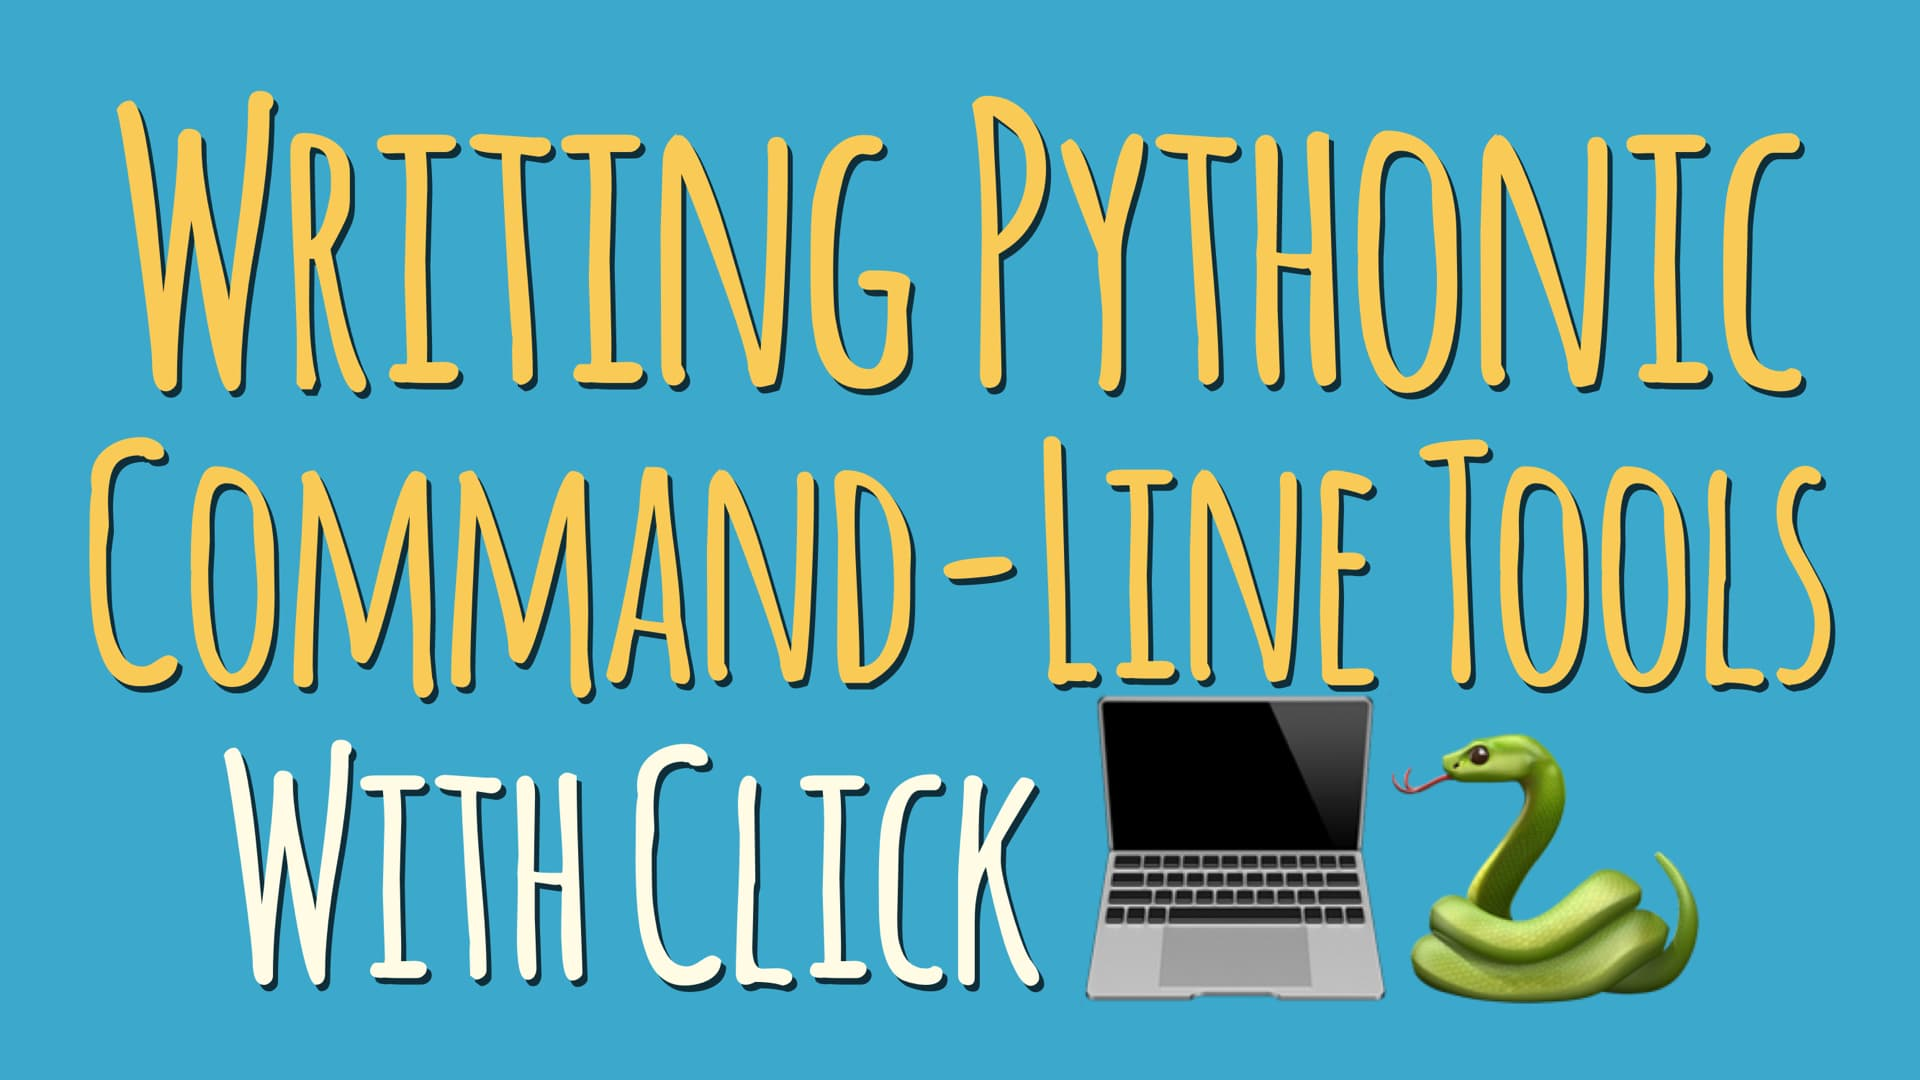 Writing Python Command-Line Tools With Click